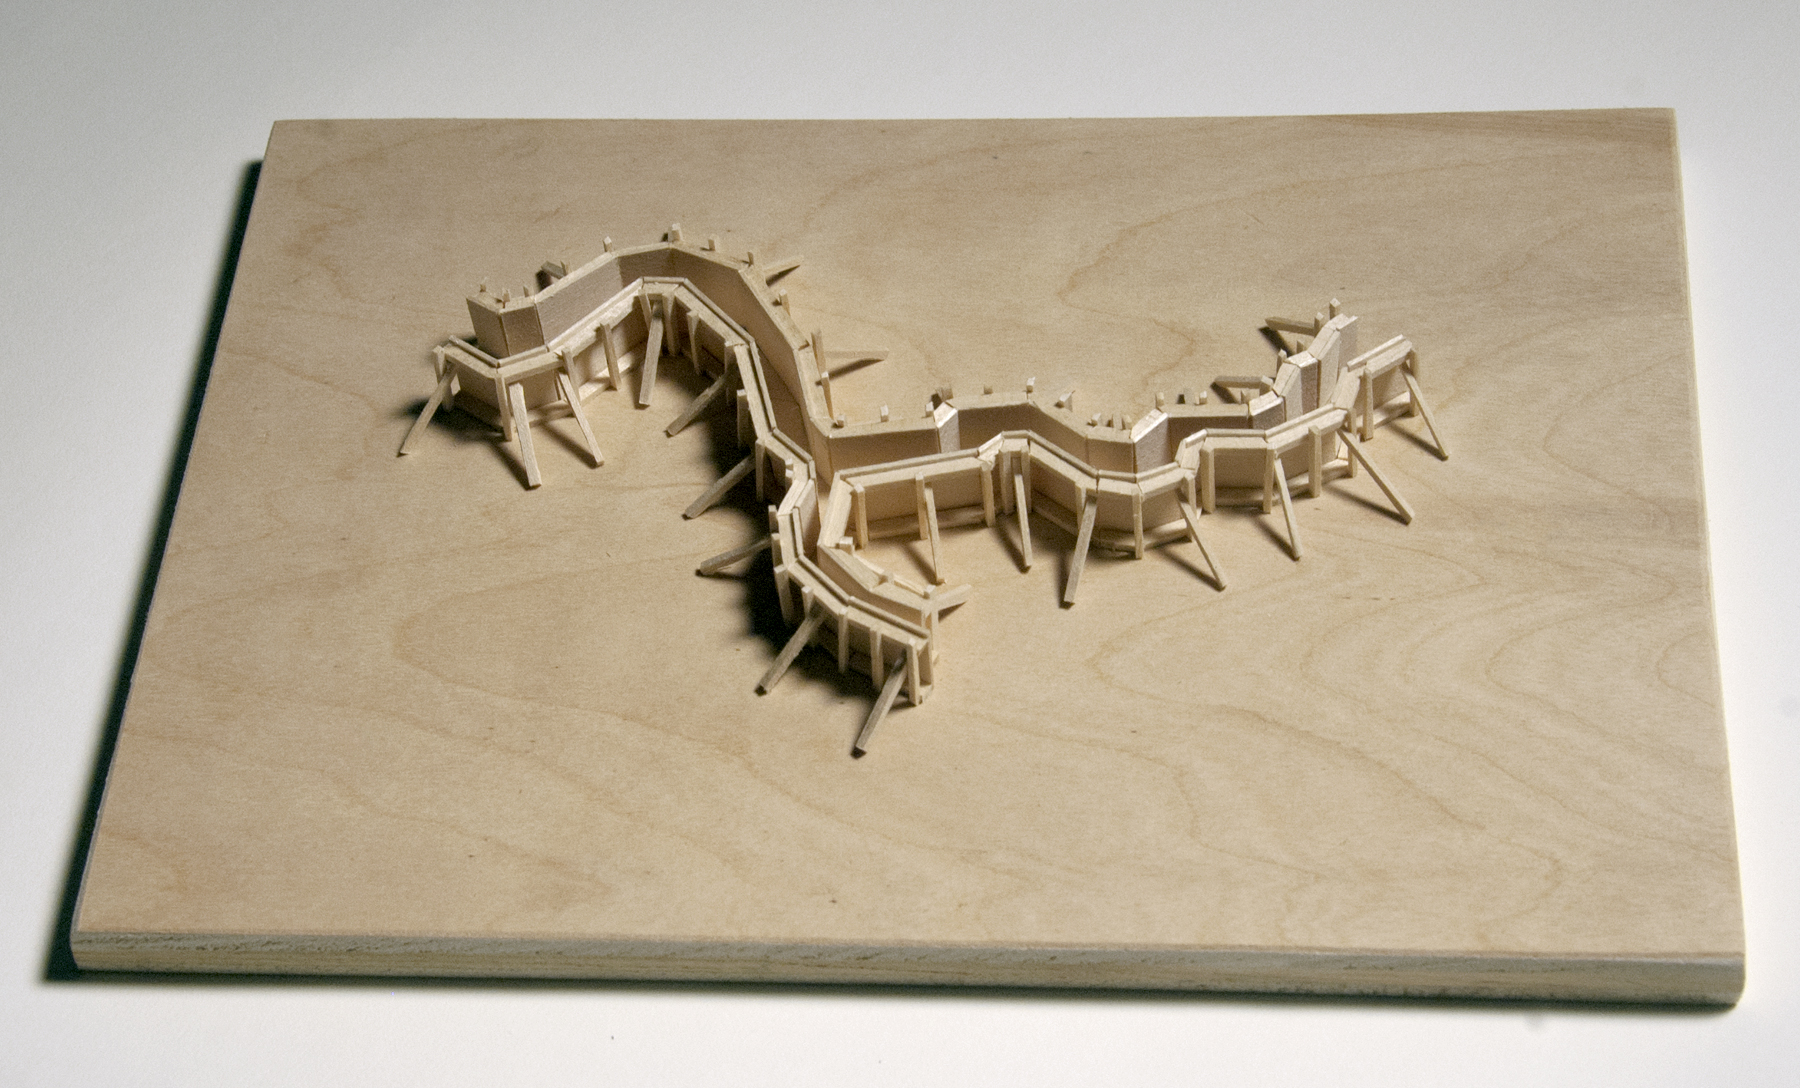 Model for Lily Creek Formwork, to be built at The Mount in Lenox, MA for SculptureNow in June 2014.